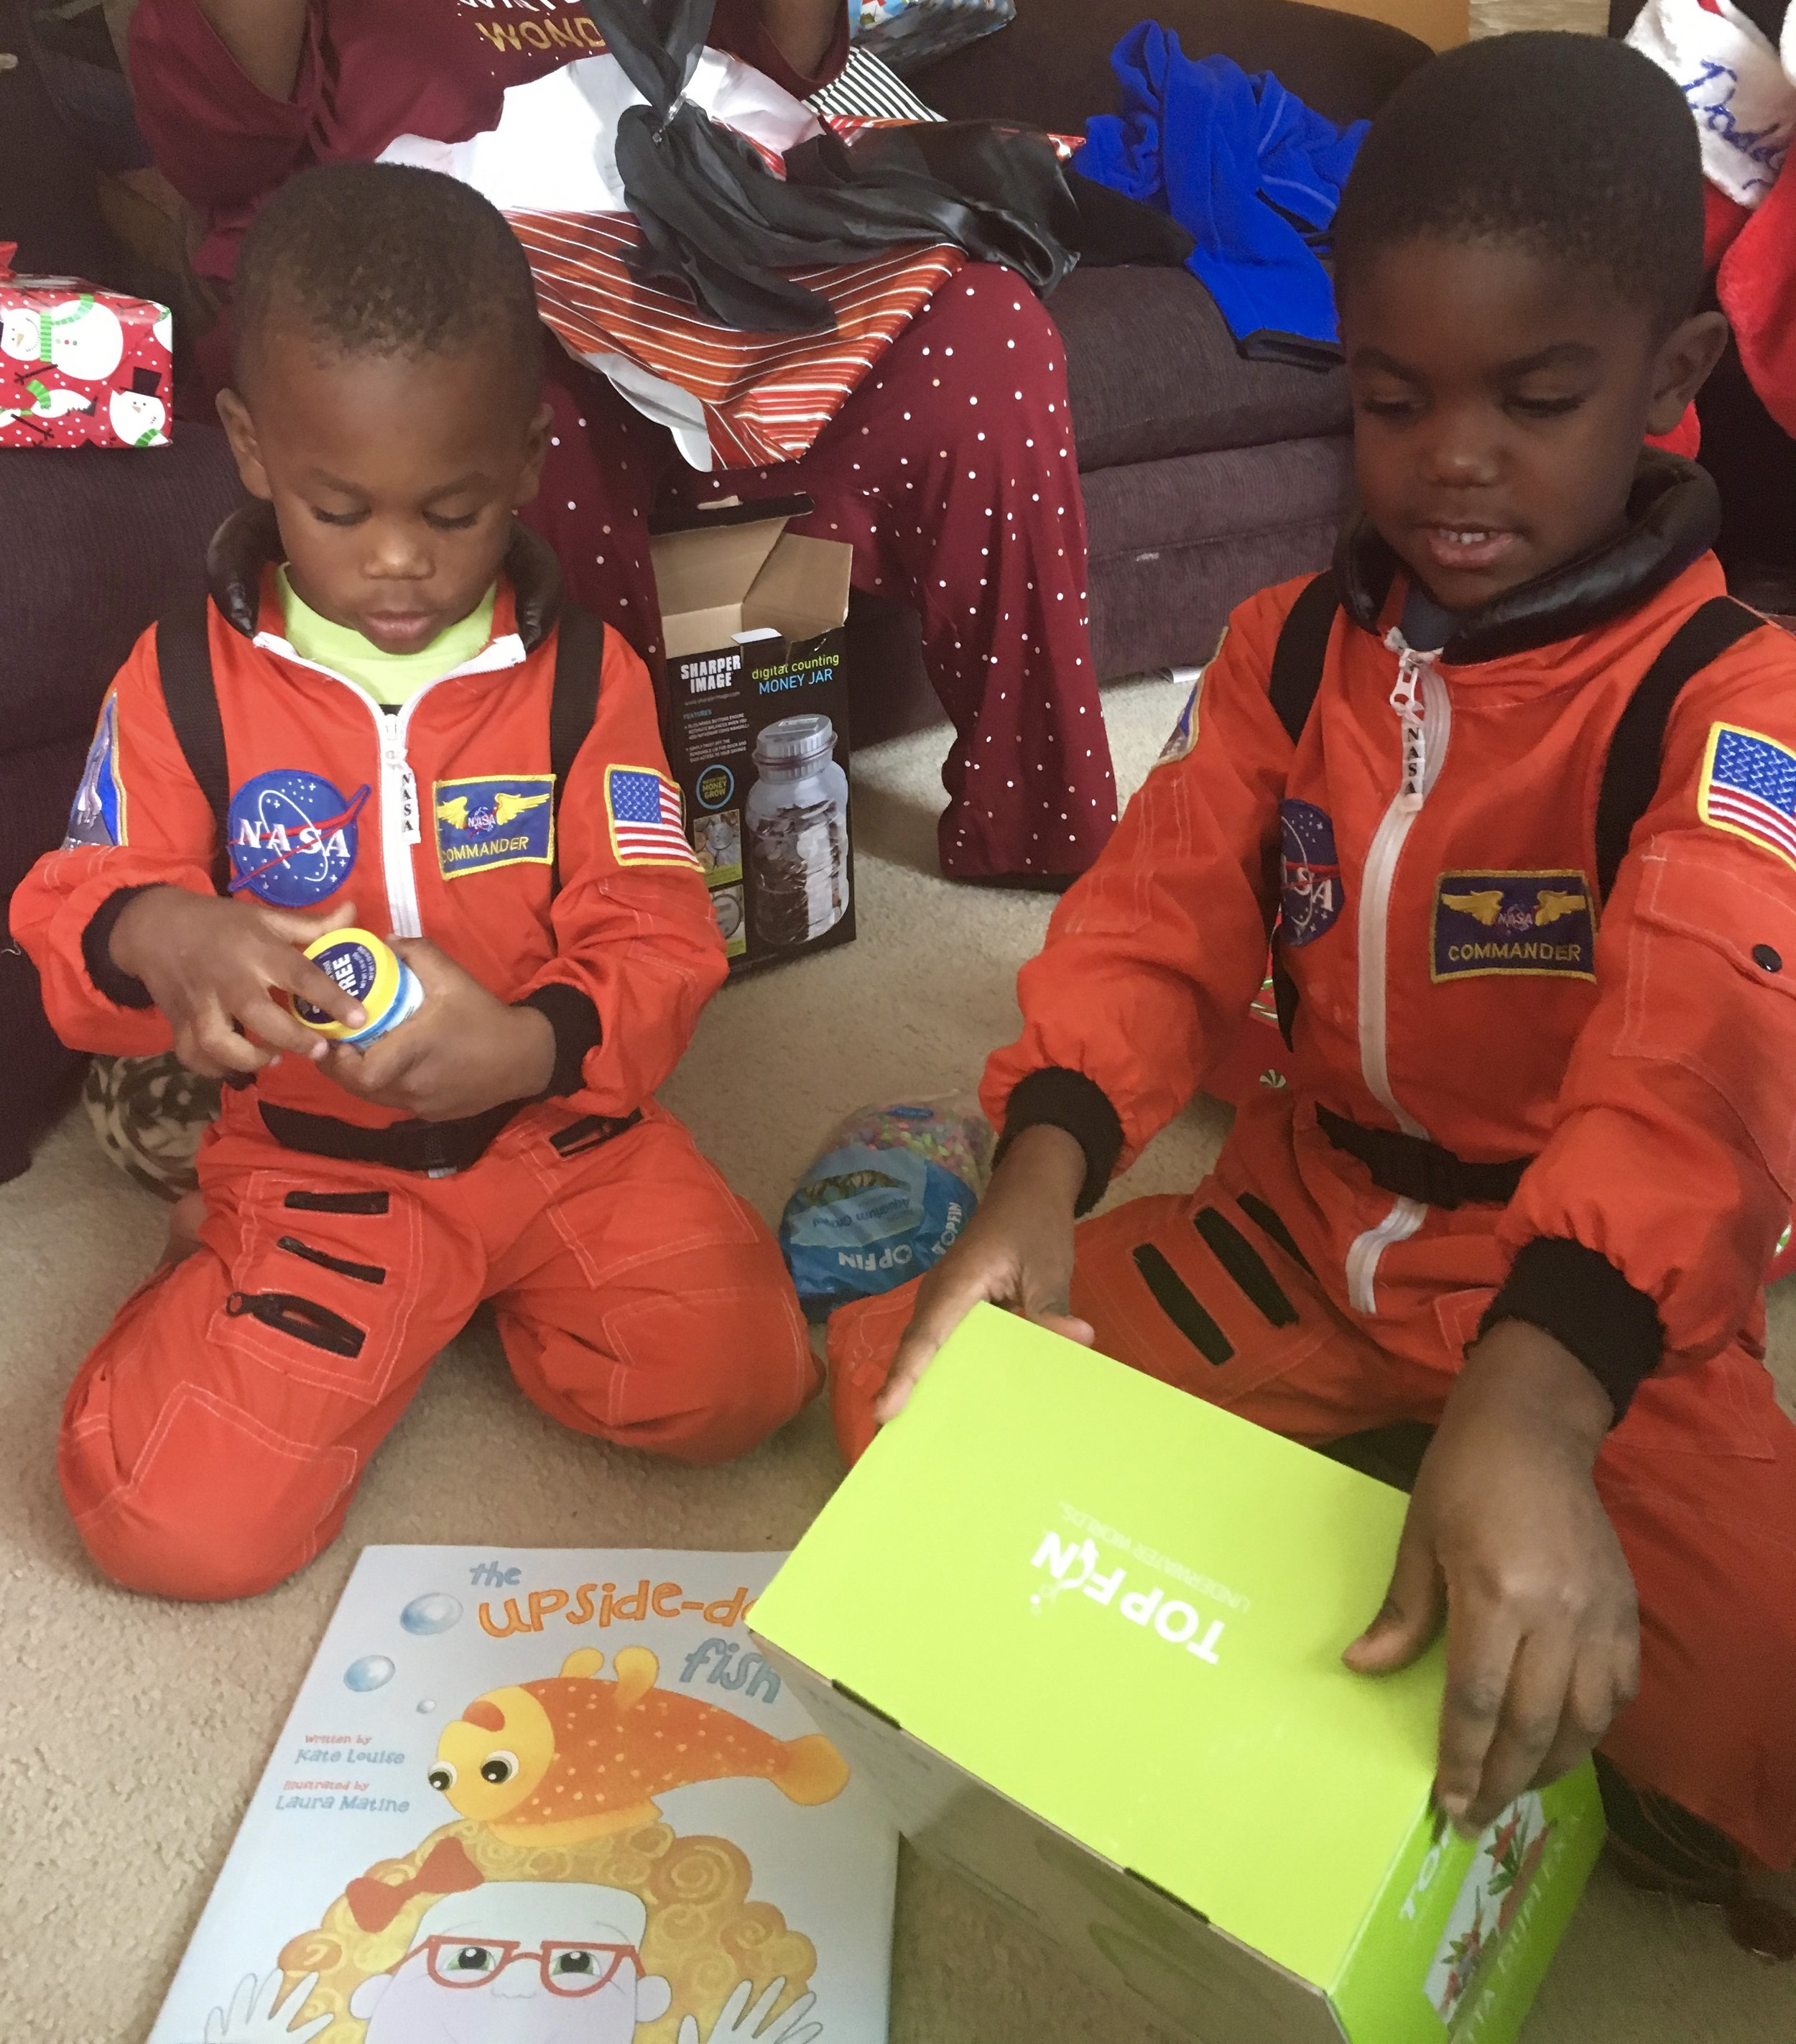 Who wants to open Christmas presents in matching pjs when you have matching space suits?!